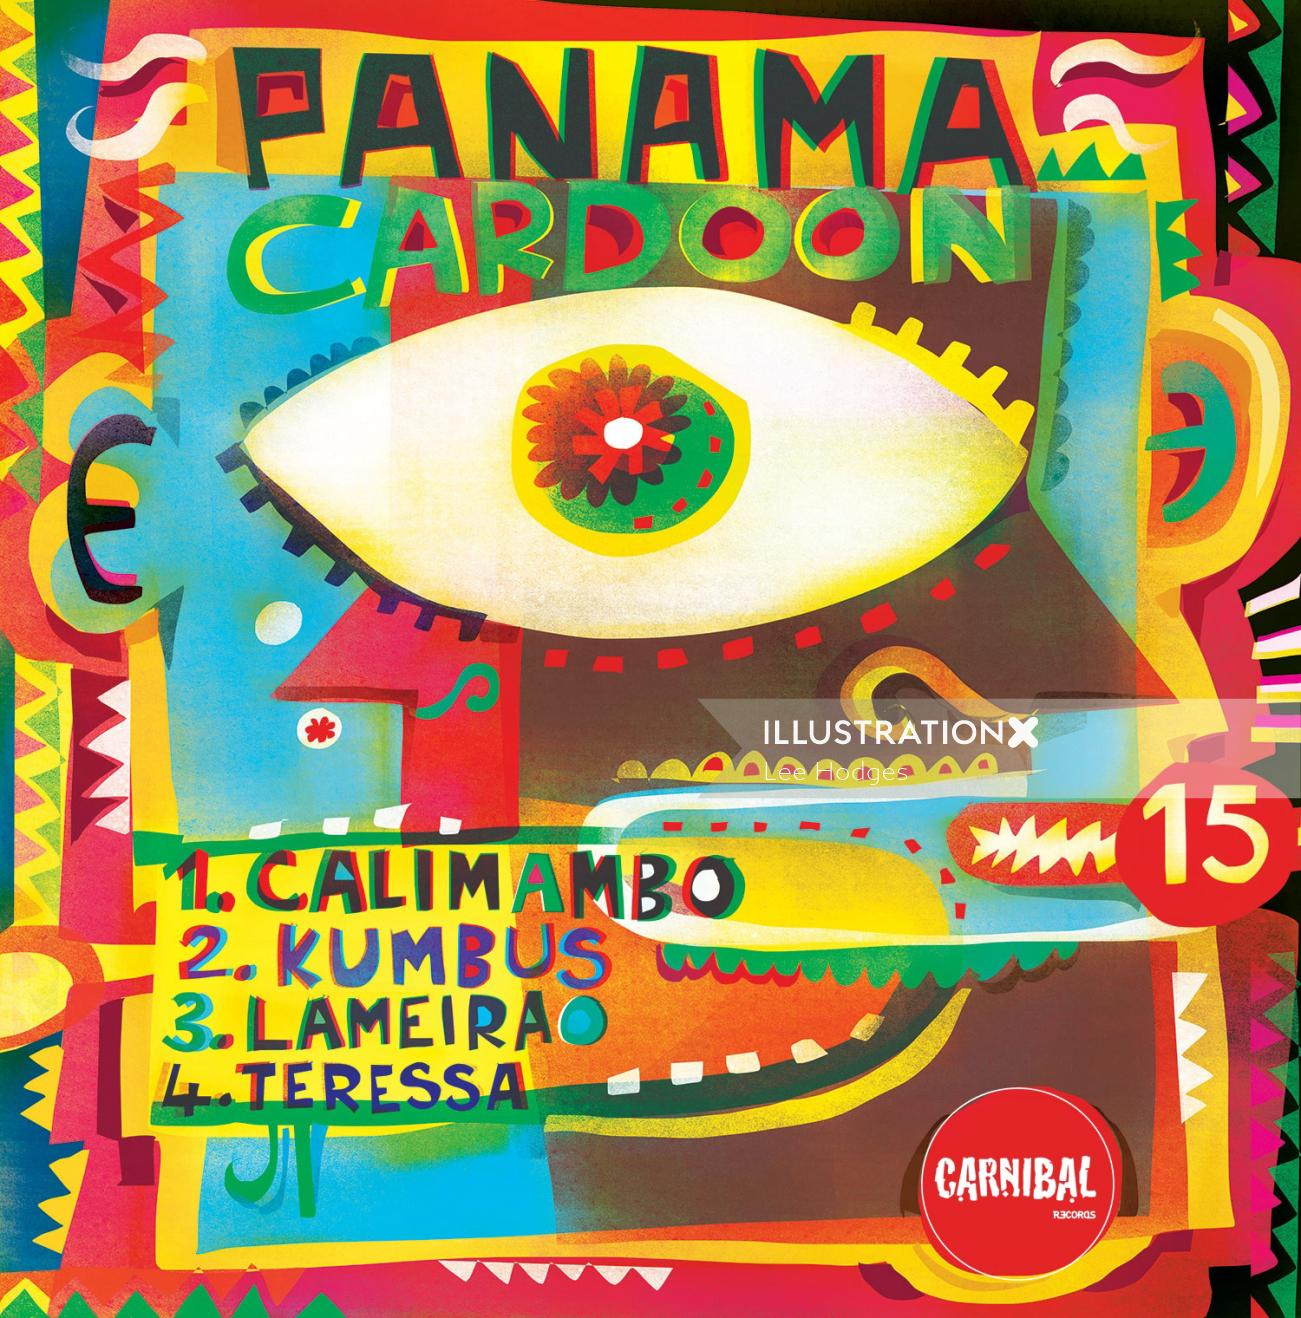 An illustration for album cover panama Cardoon